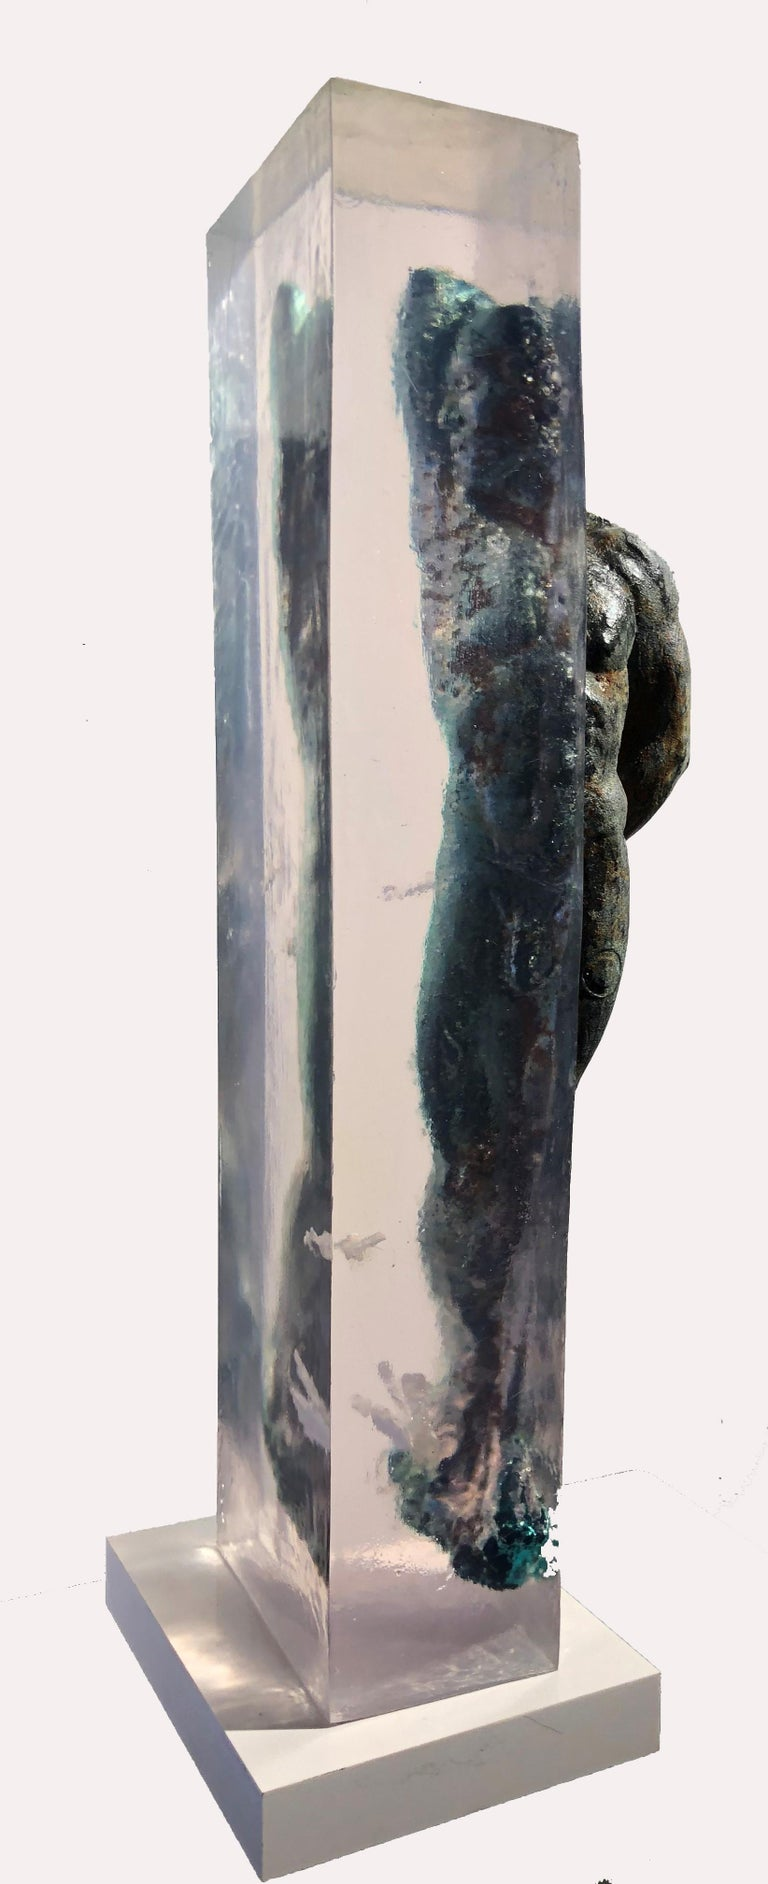 Embedded Slave - After Michelangelo, Sculpture Half Embedded in Clear Resin 4